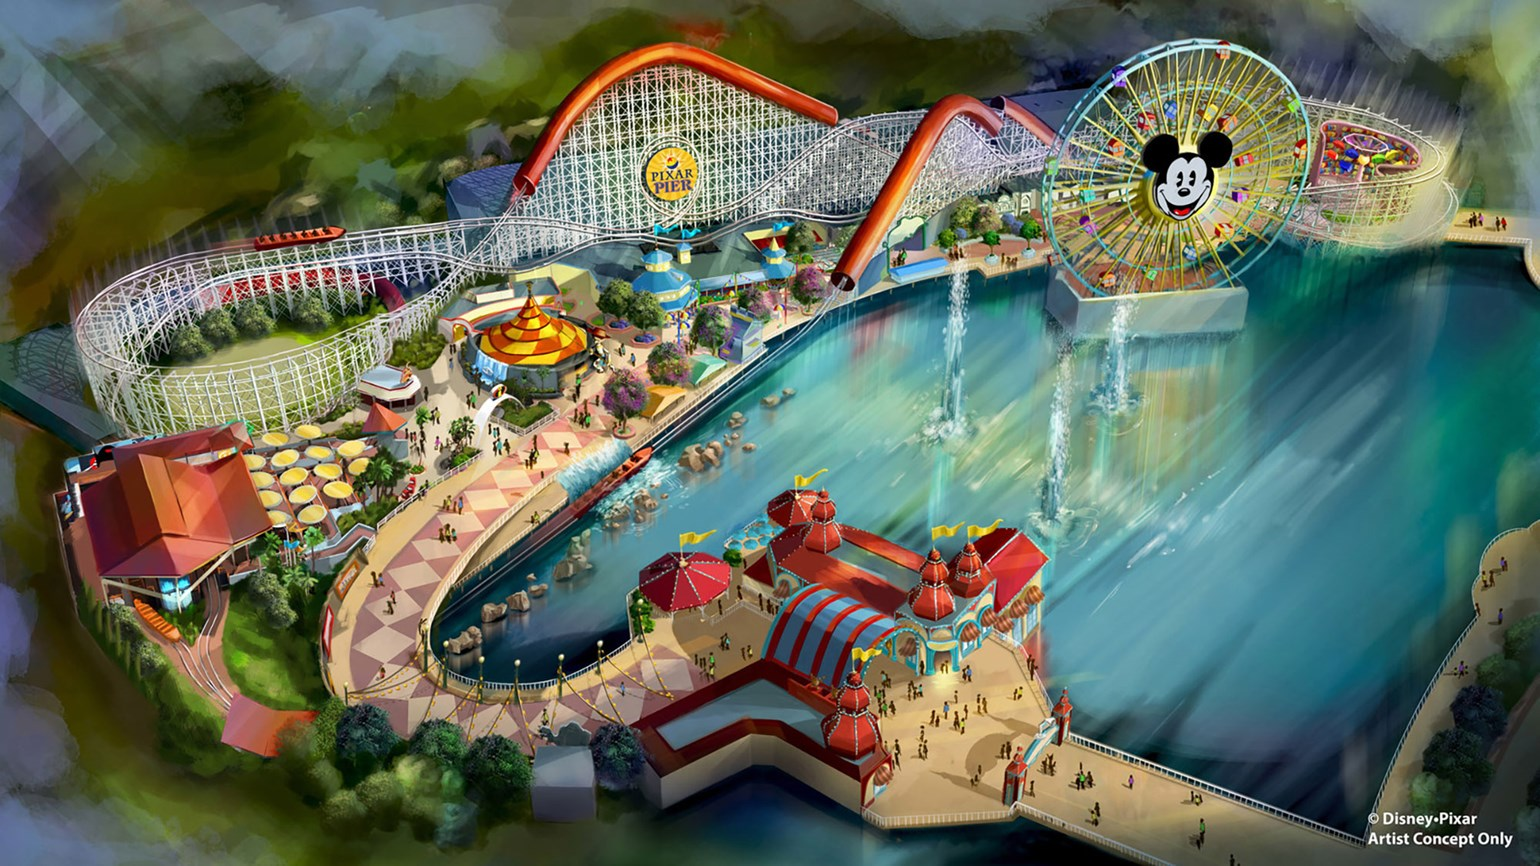 Incredibles-themed coaster coming to Disneyland Resort